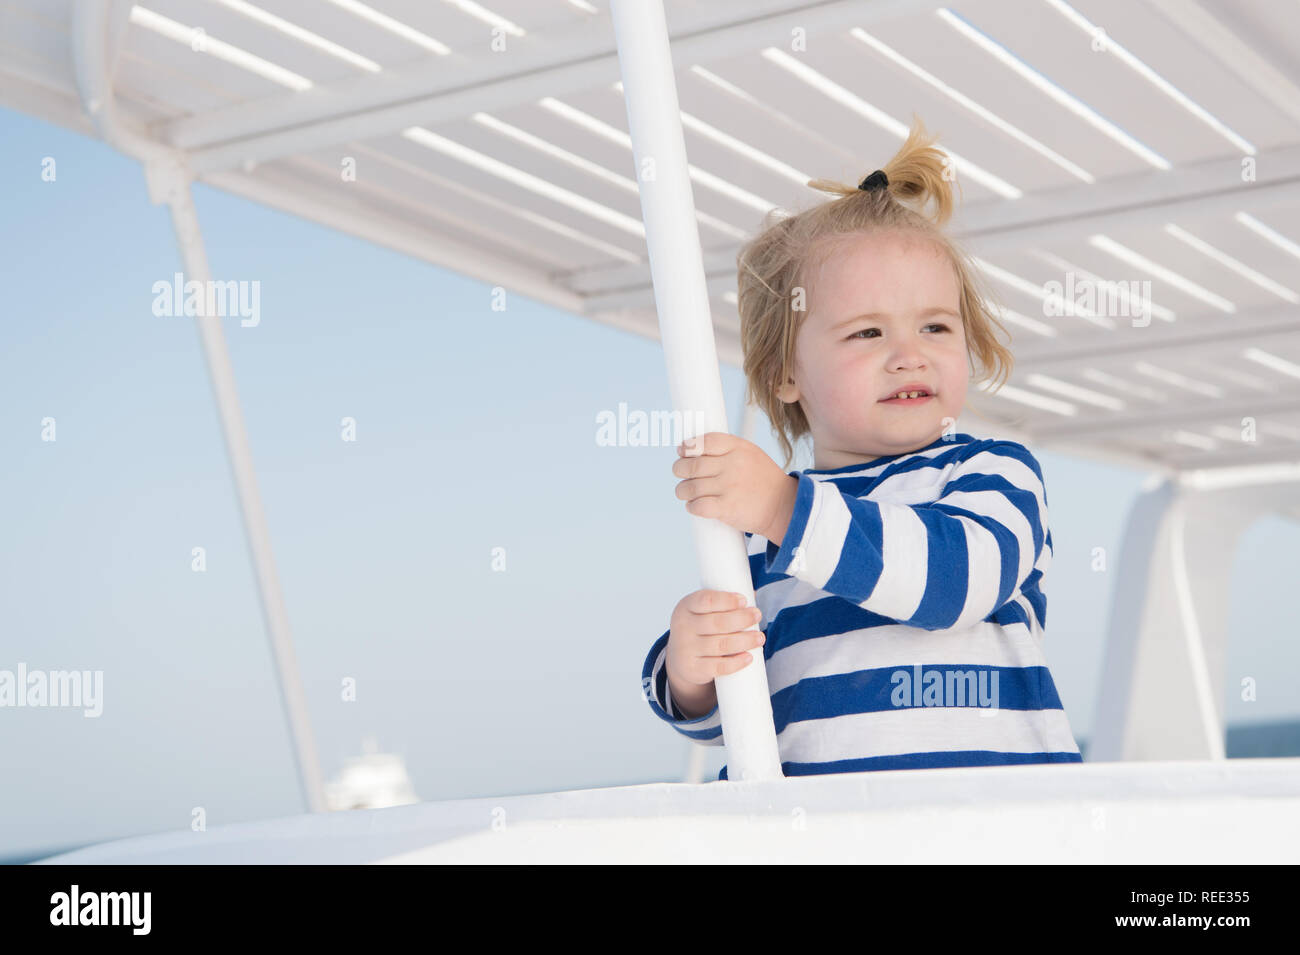 Cruising with kids. Child smiling face striped shirt looks like sailor. Kid boy toddler travelling sea cruise. Family vacation on cruise ship all inclusive tour. Child enjoy vacation on cruise ship. - Stock Image